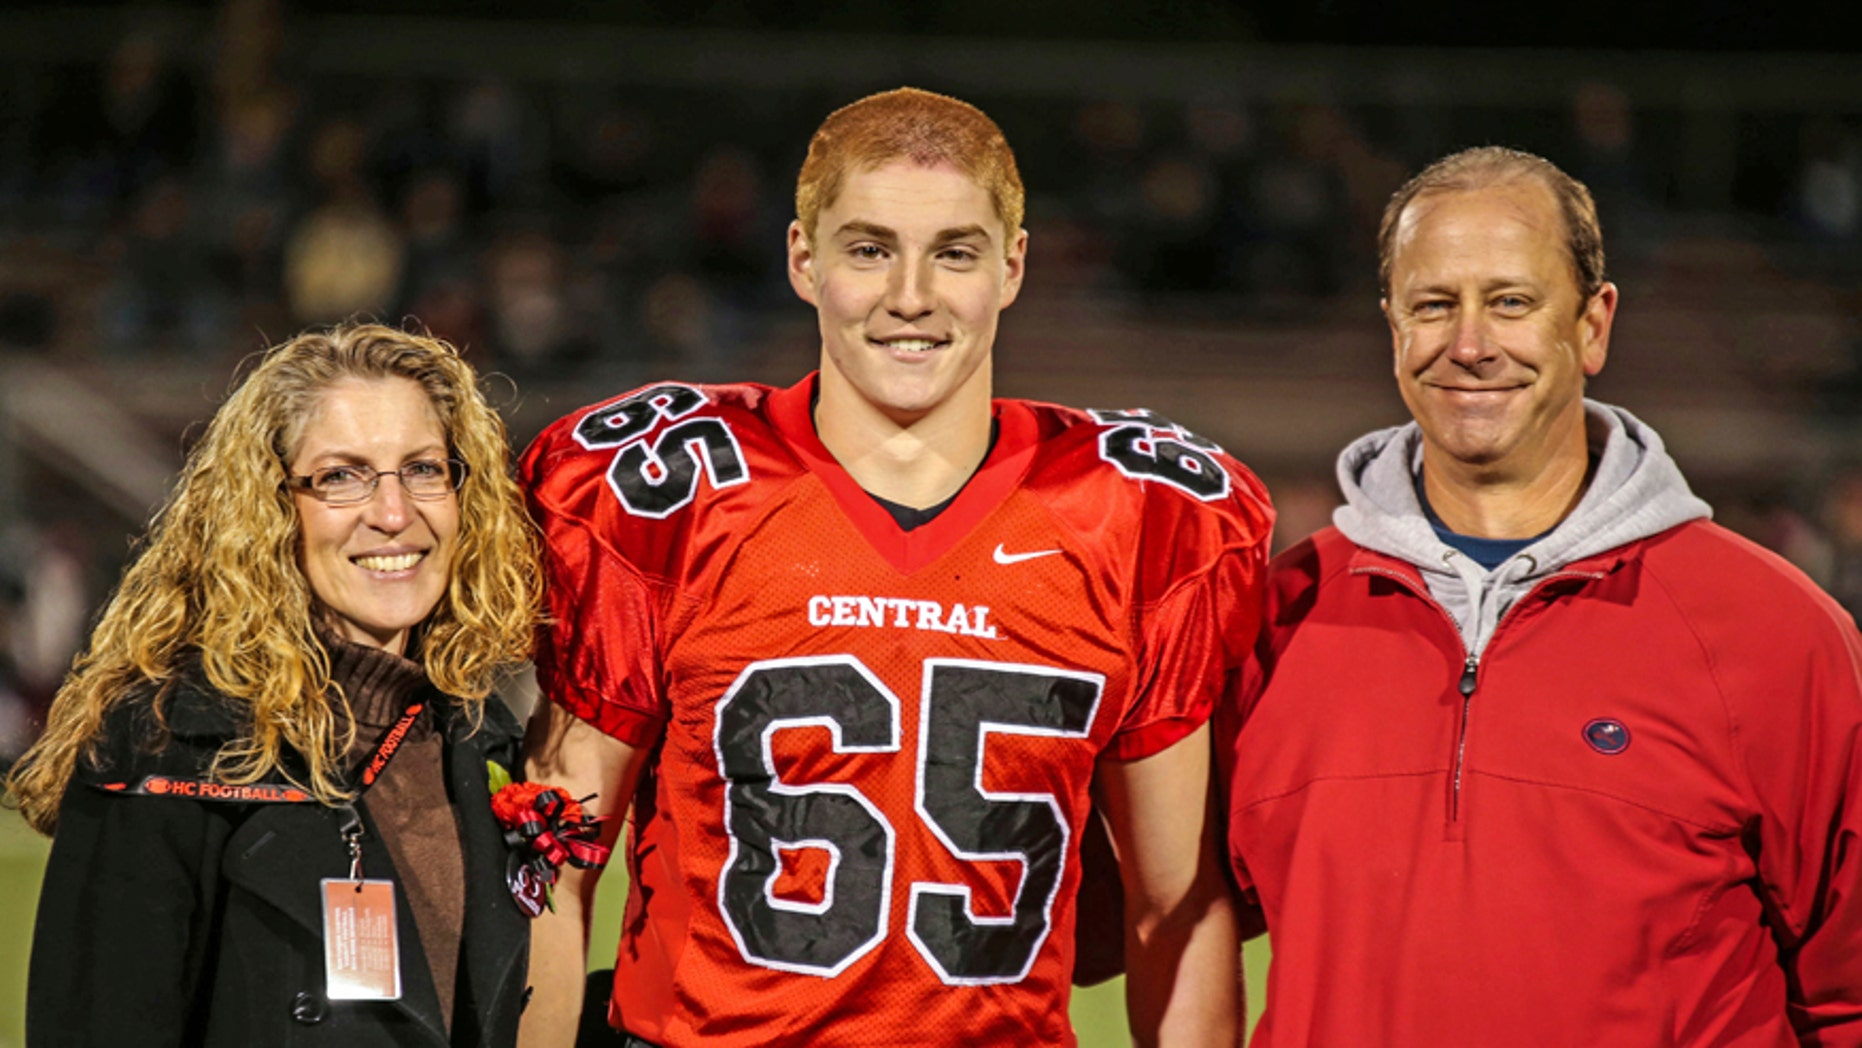 Timothy Piazza, center, with his parents Evelyn Piazza, left, and James Piazza, right, at Hunterdon Central Regional High School in 2014.